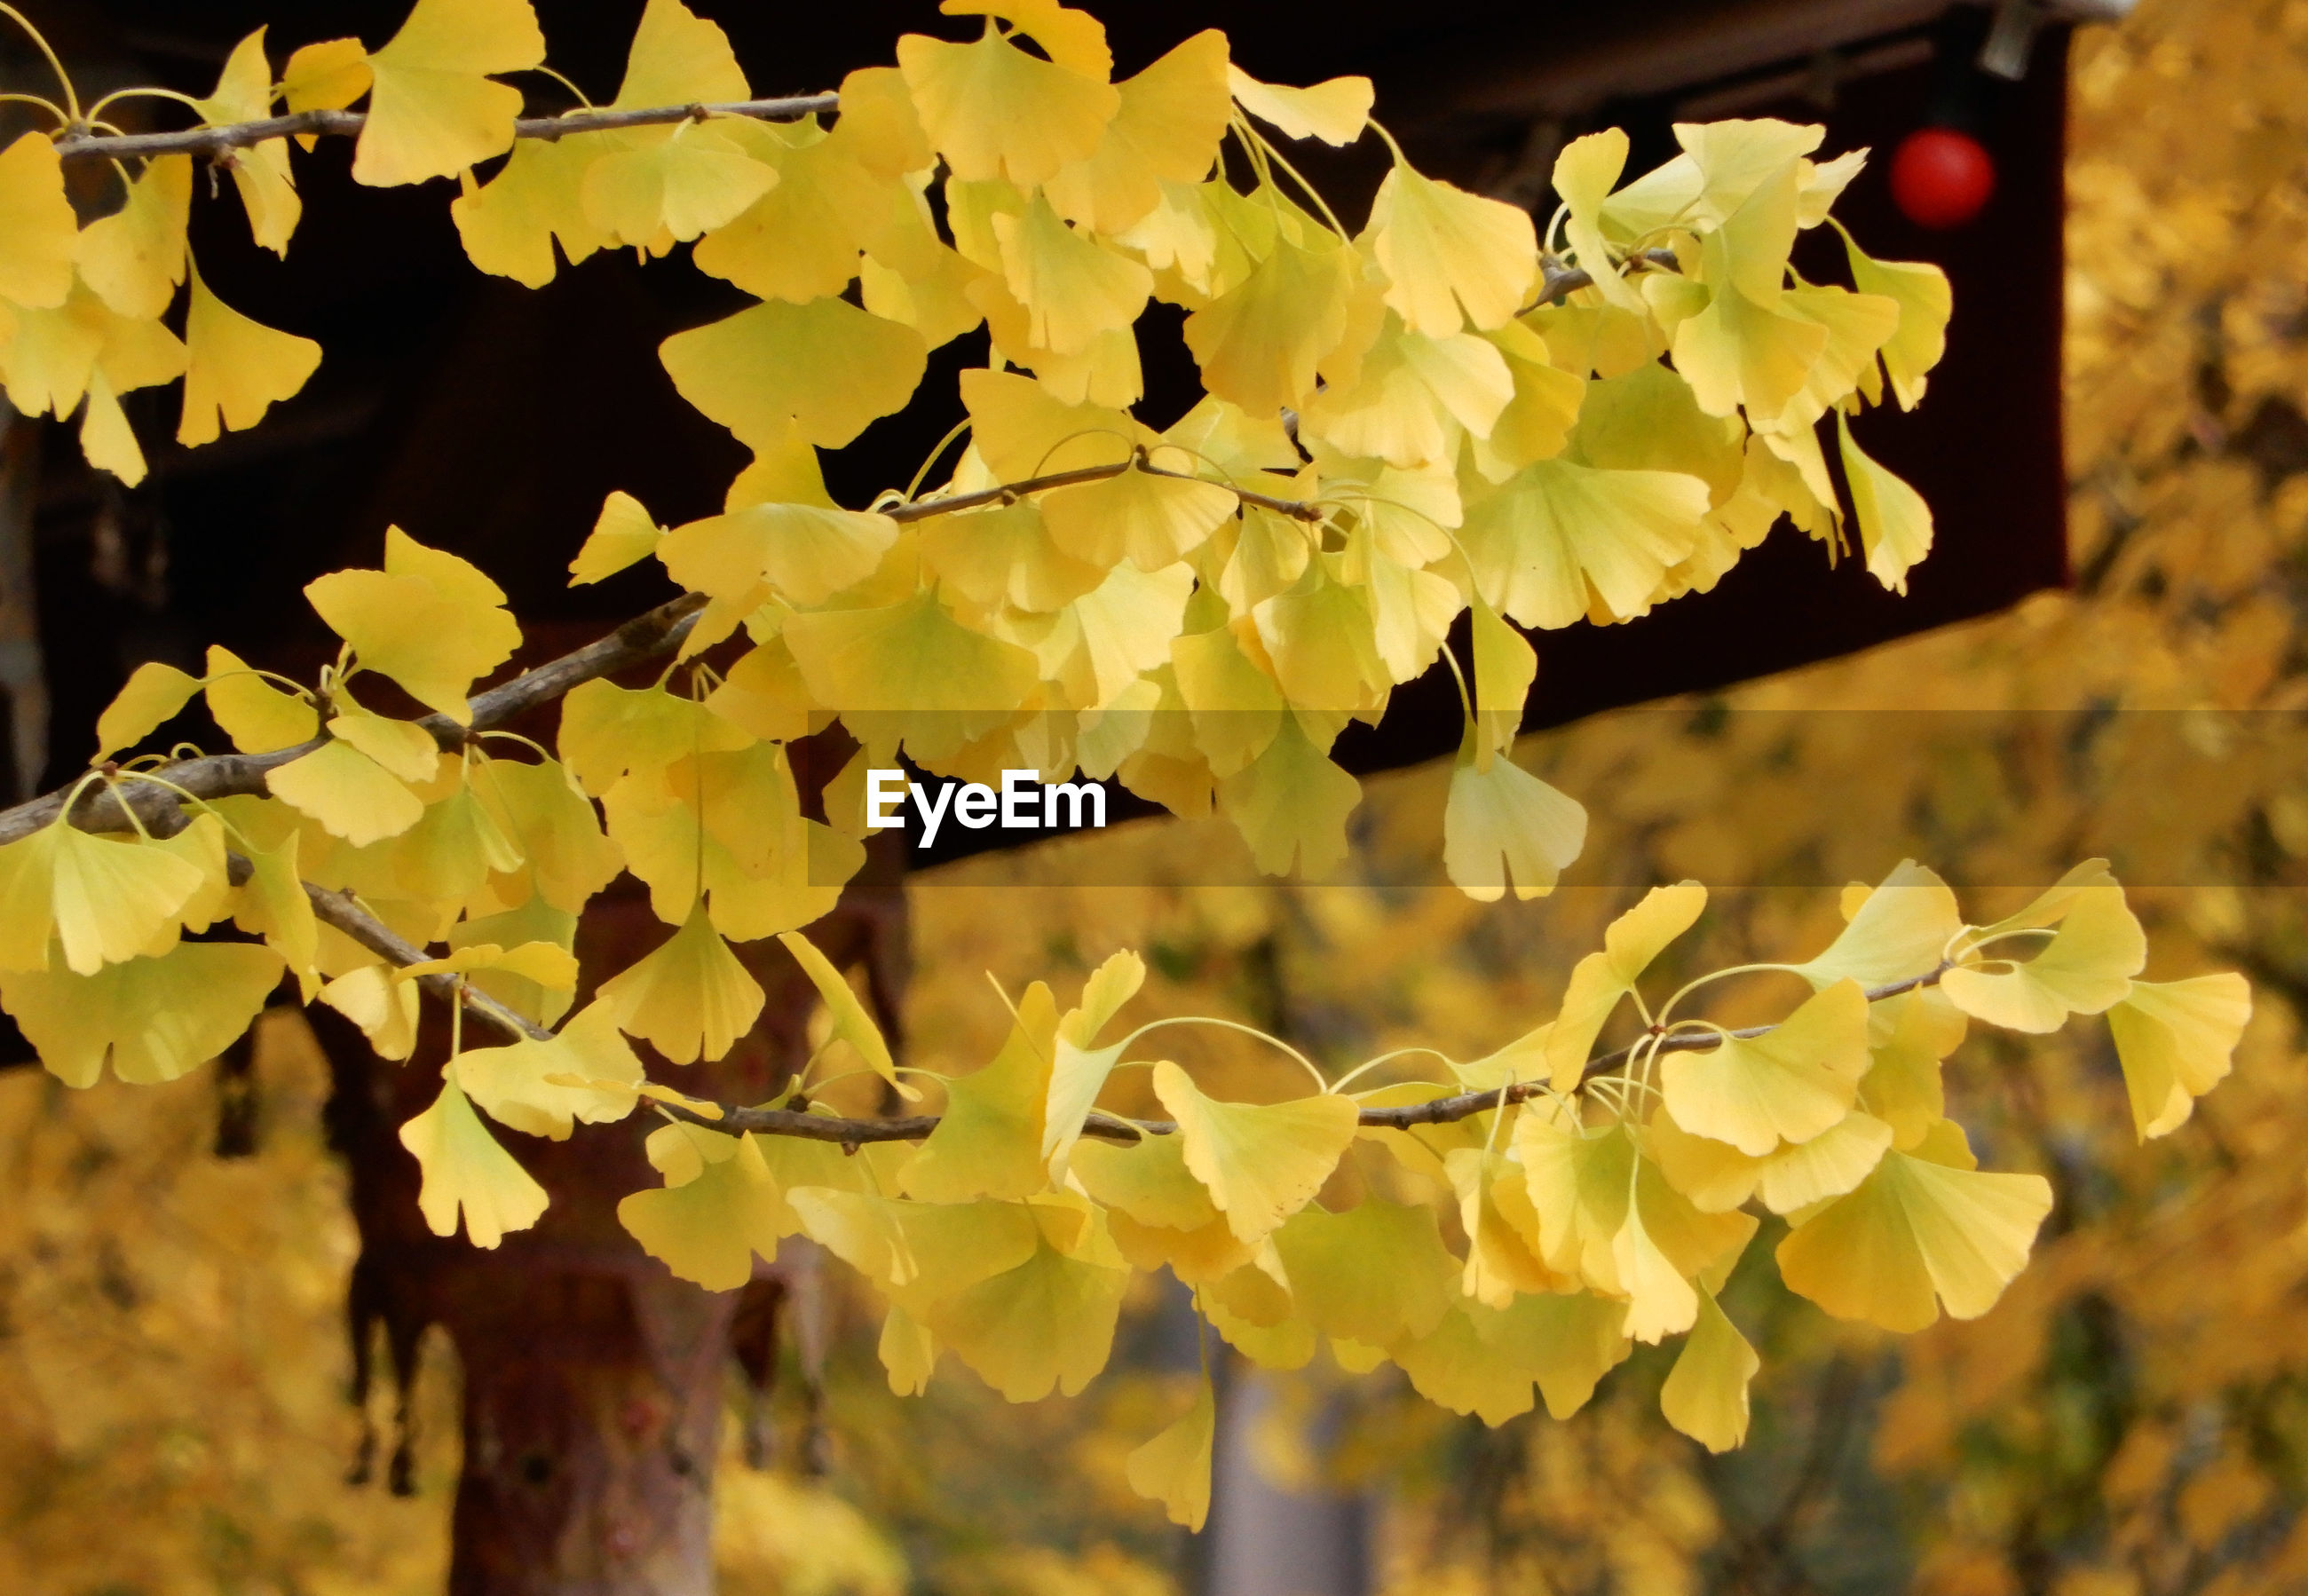 CLOSE-UP OF YELLOW FLOWERING PLANT AGAINST TREE